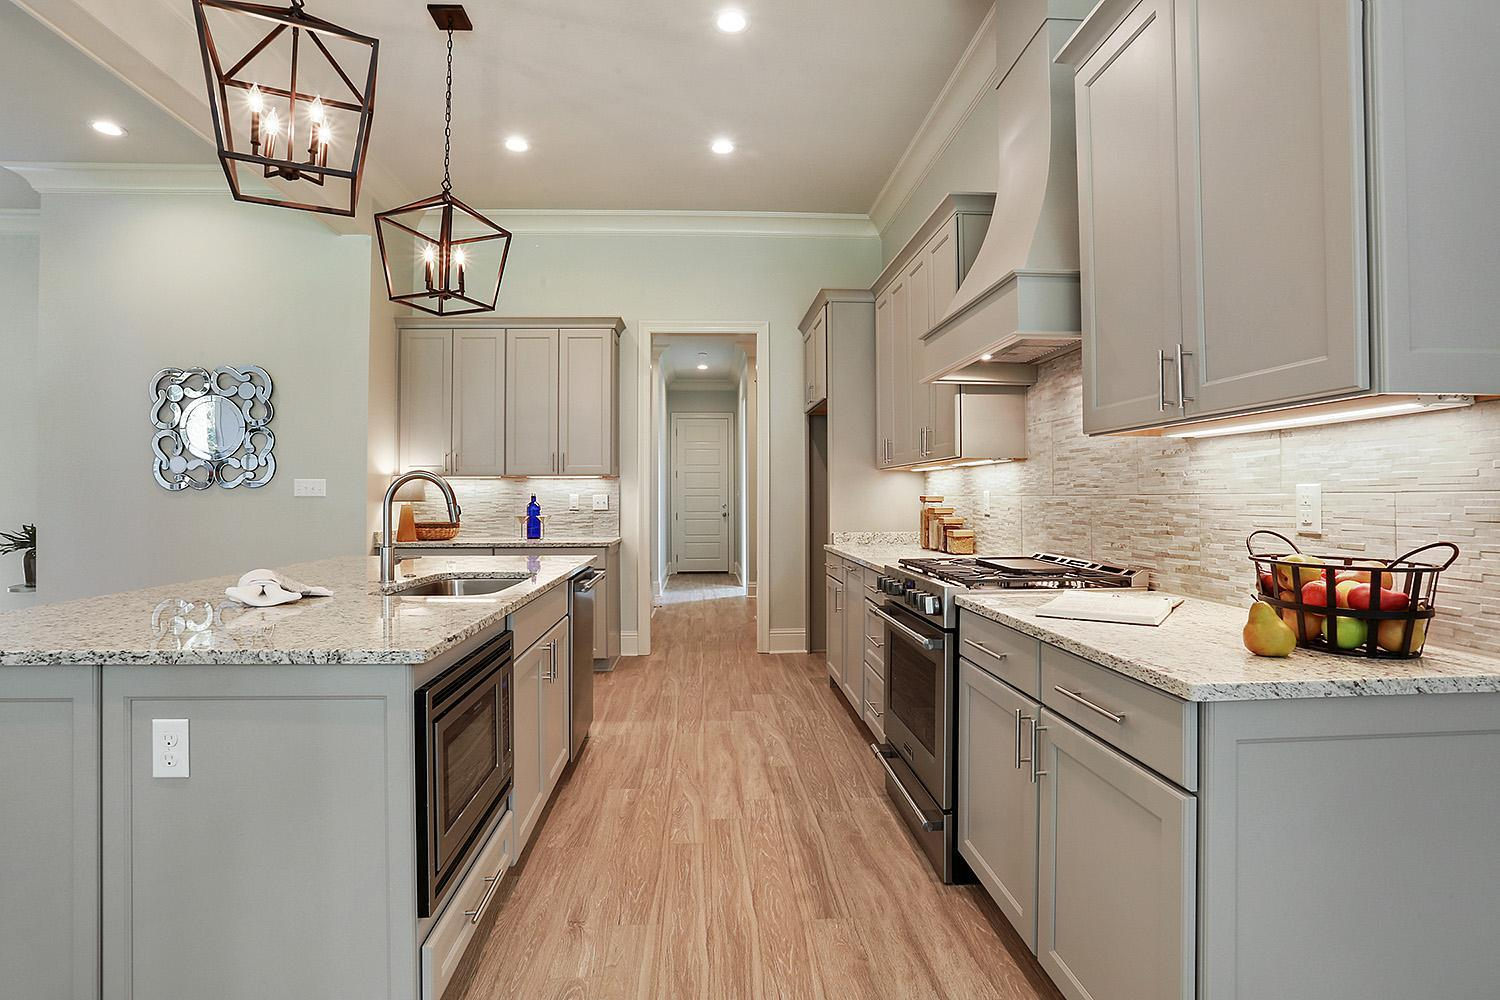 Kitchen featured in the Sandalwood By Highland Homes in New Orleans, LA